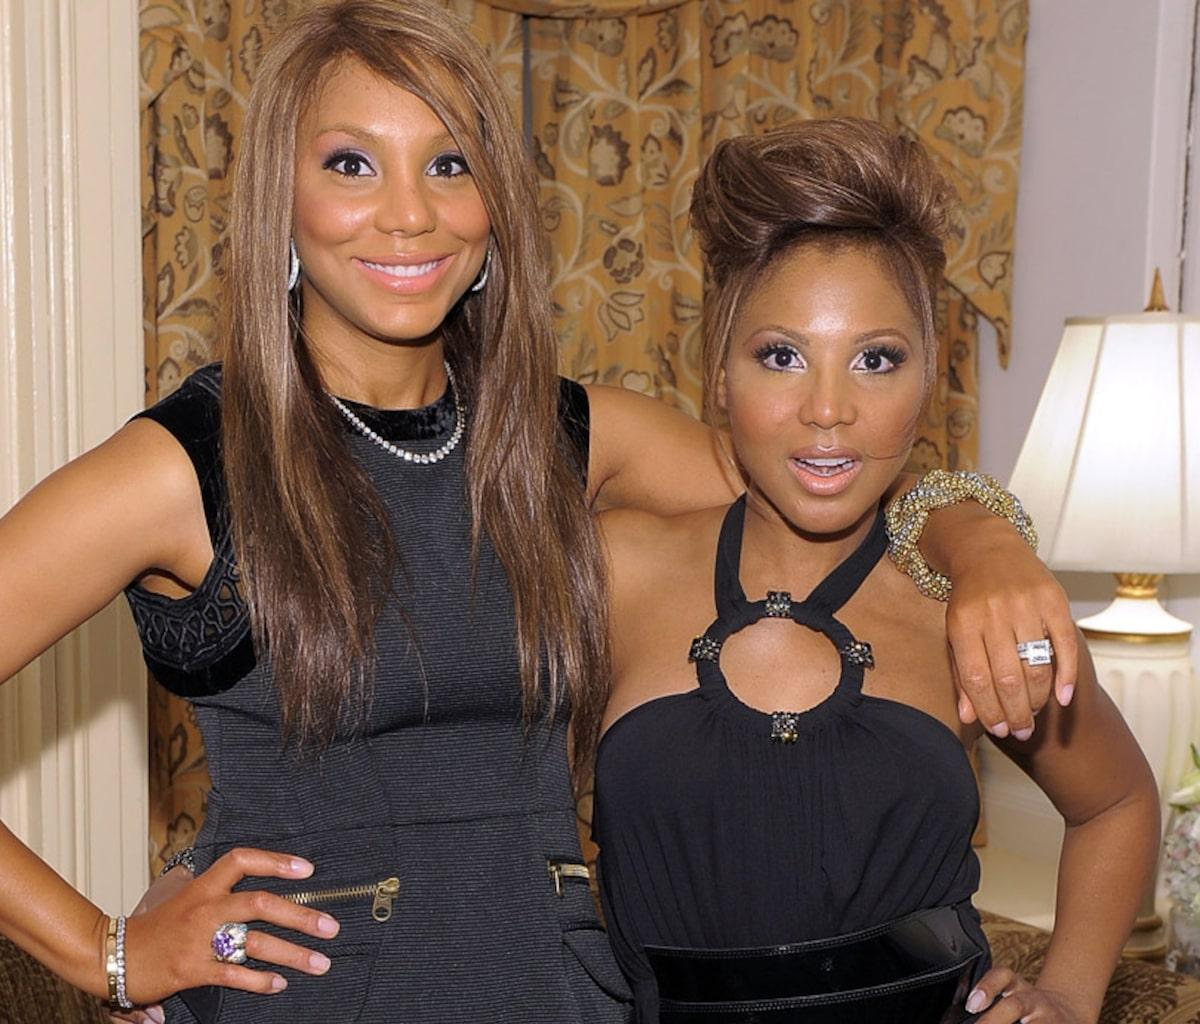 Toni Braxton And Tamar Braxton Are Terrified During These Terrible Times: 'They Want To Hurt Us'